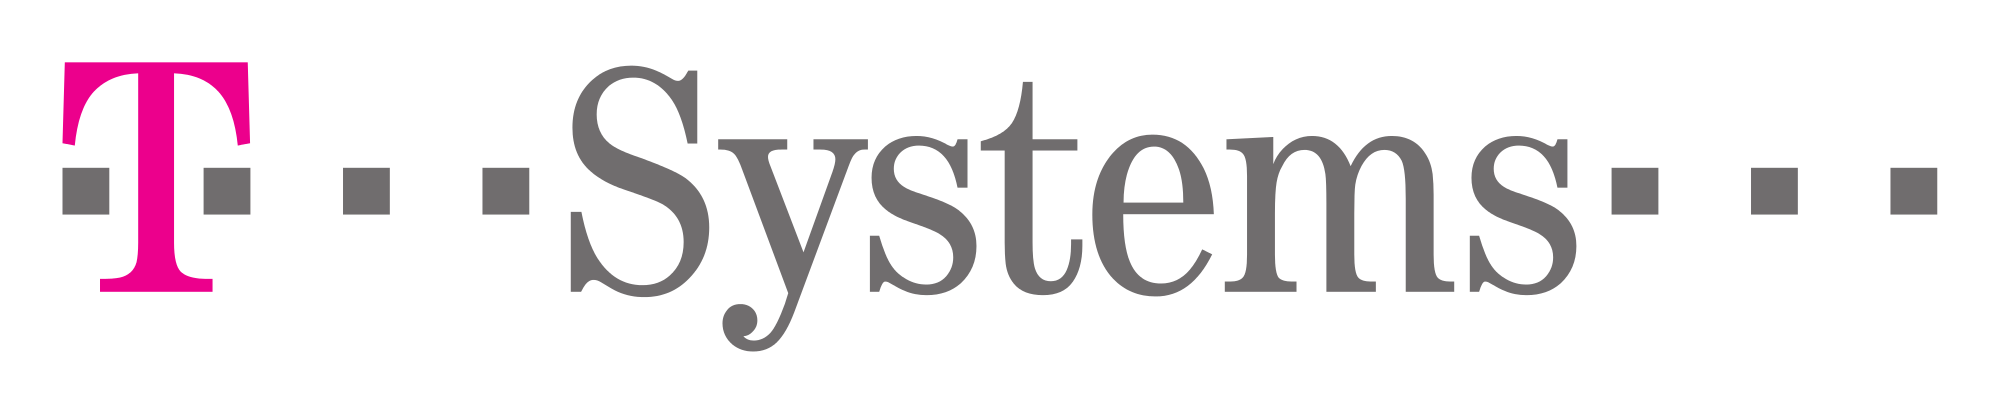 T-Systems_Logo_svg